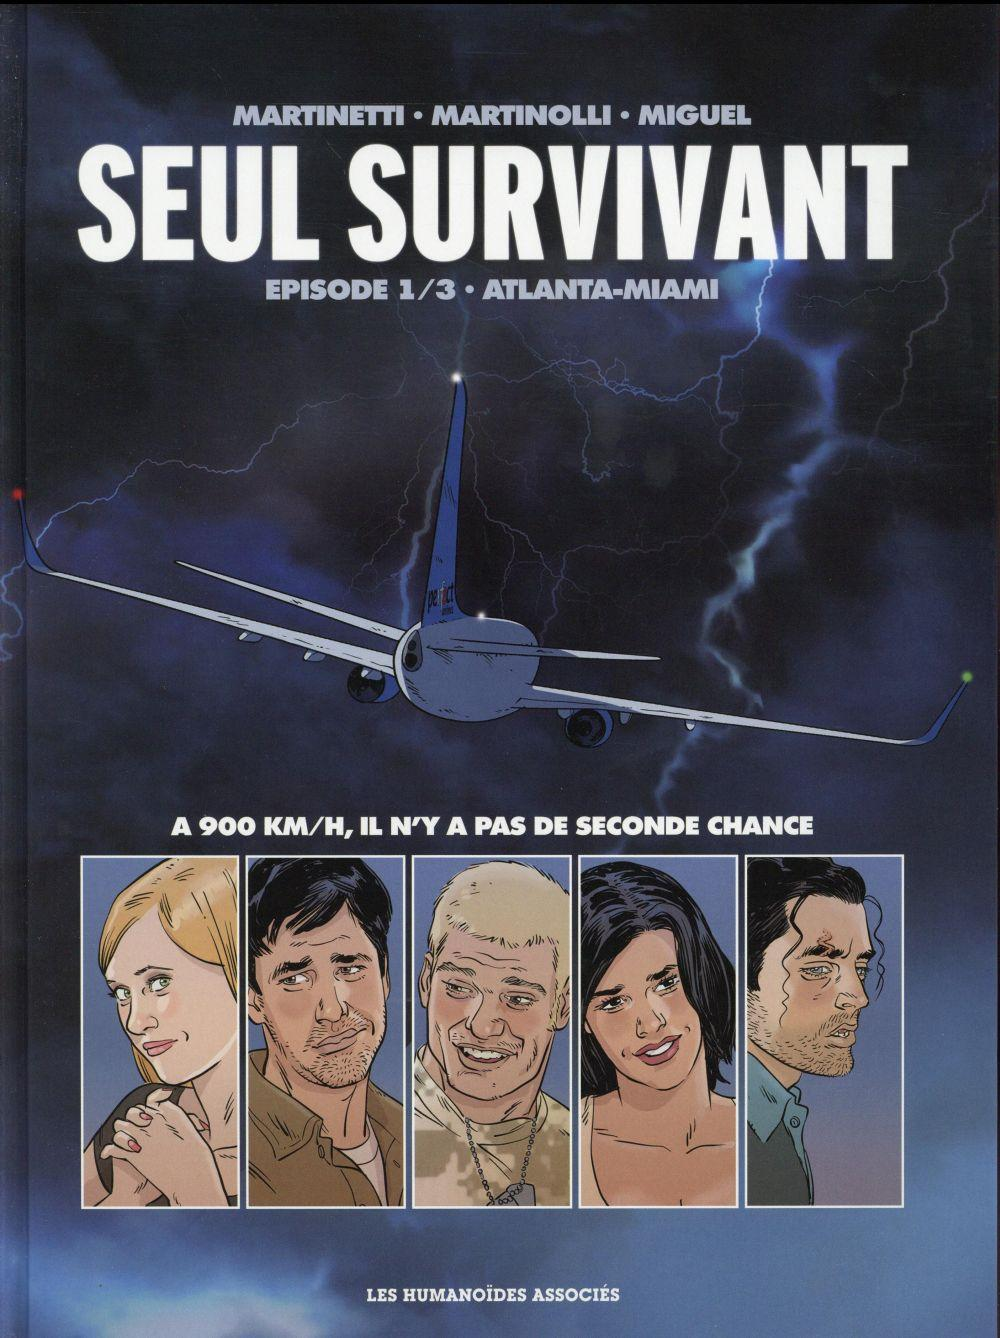 Seul survivant t.1 ; Atlanta-Miami  - Thomas Martinetti  - Christophe Martinolli  - Stephane Louis  - Jorge Miguel